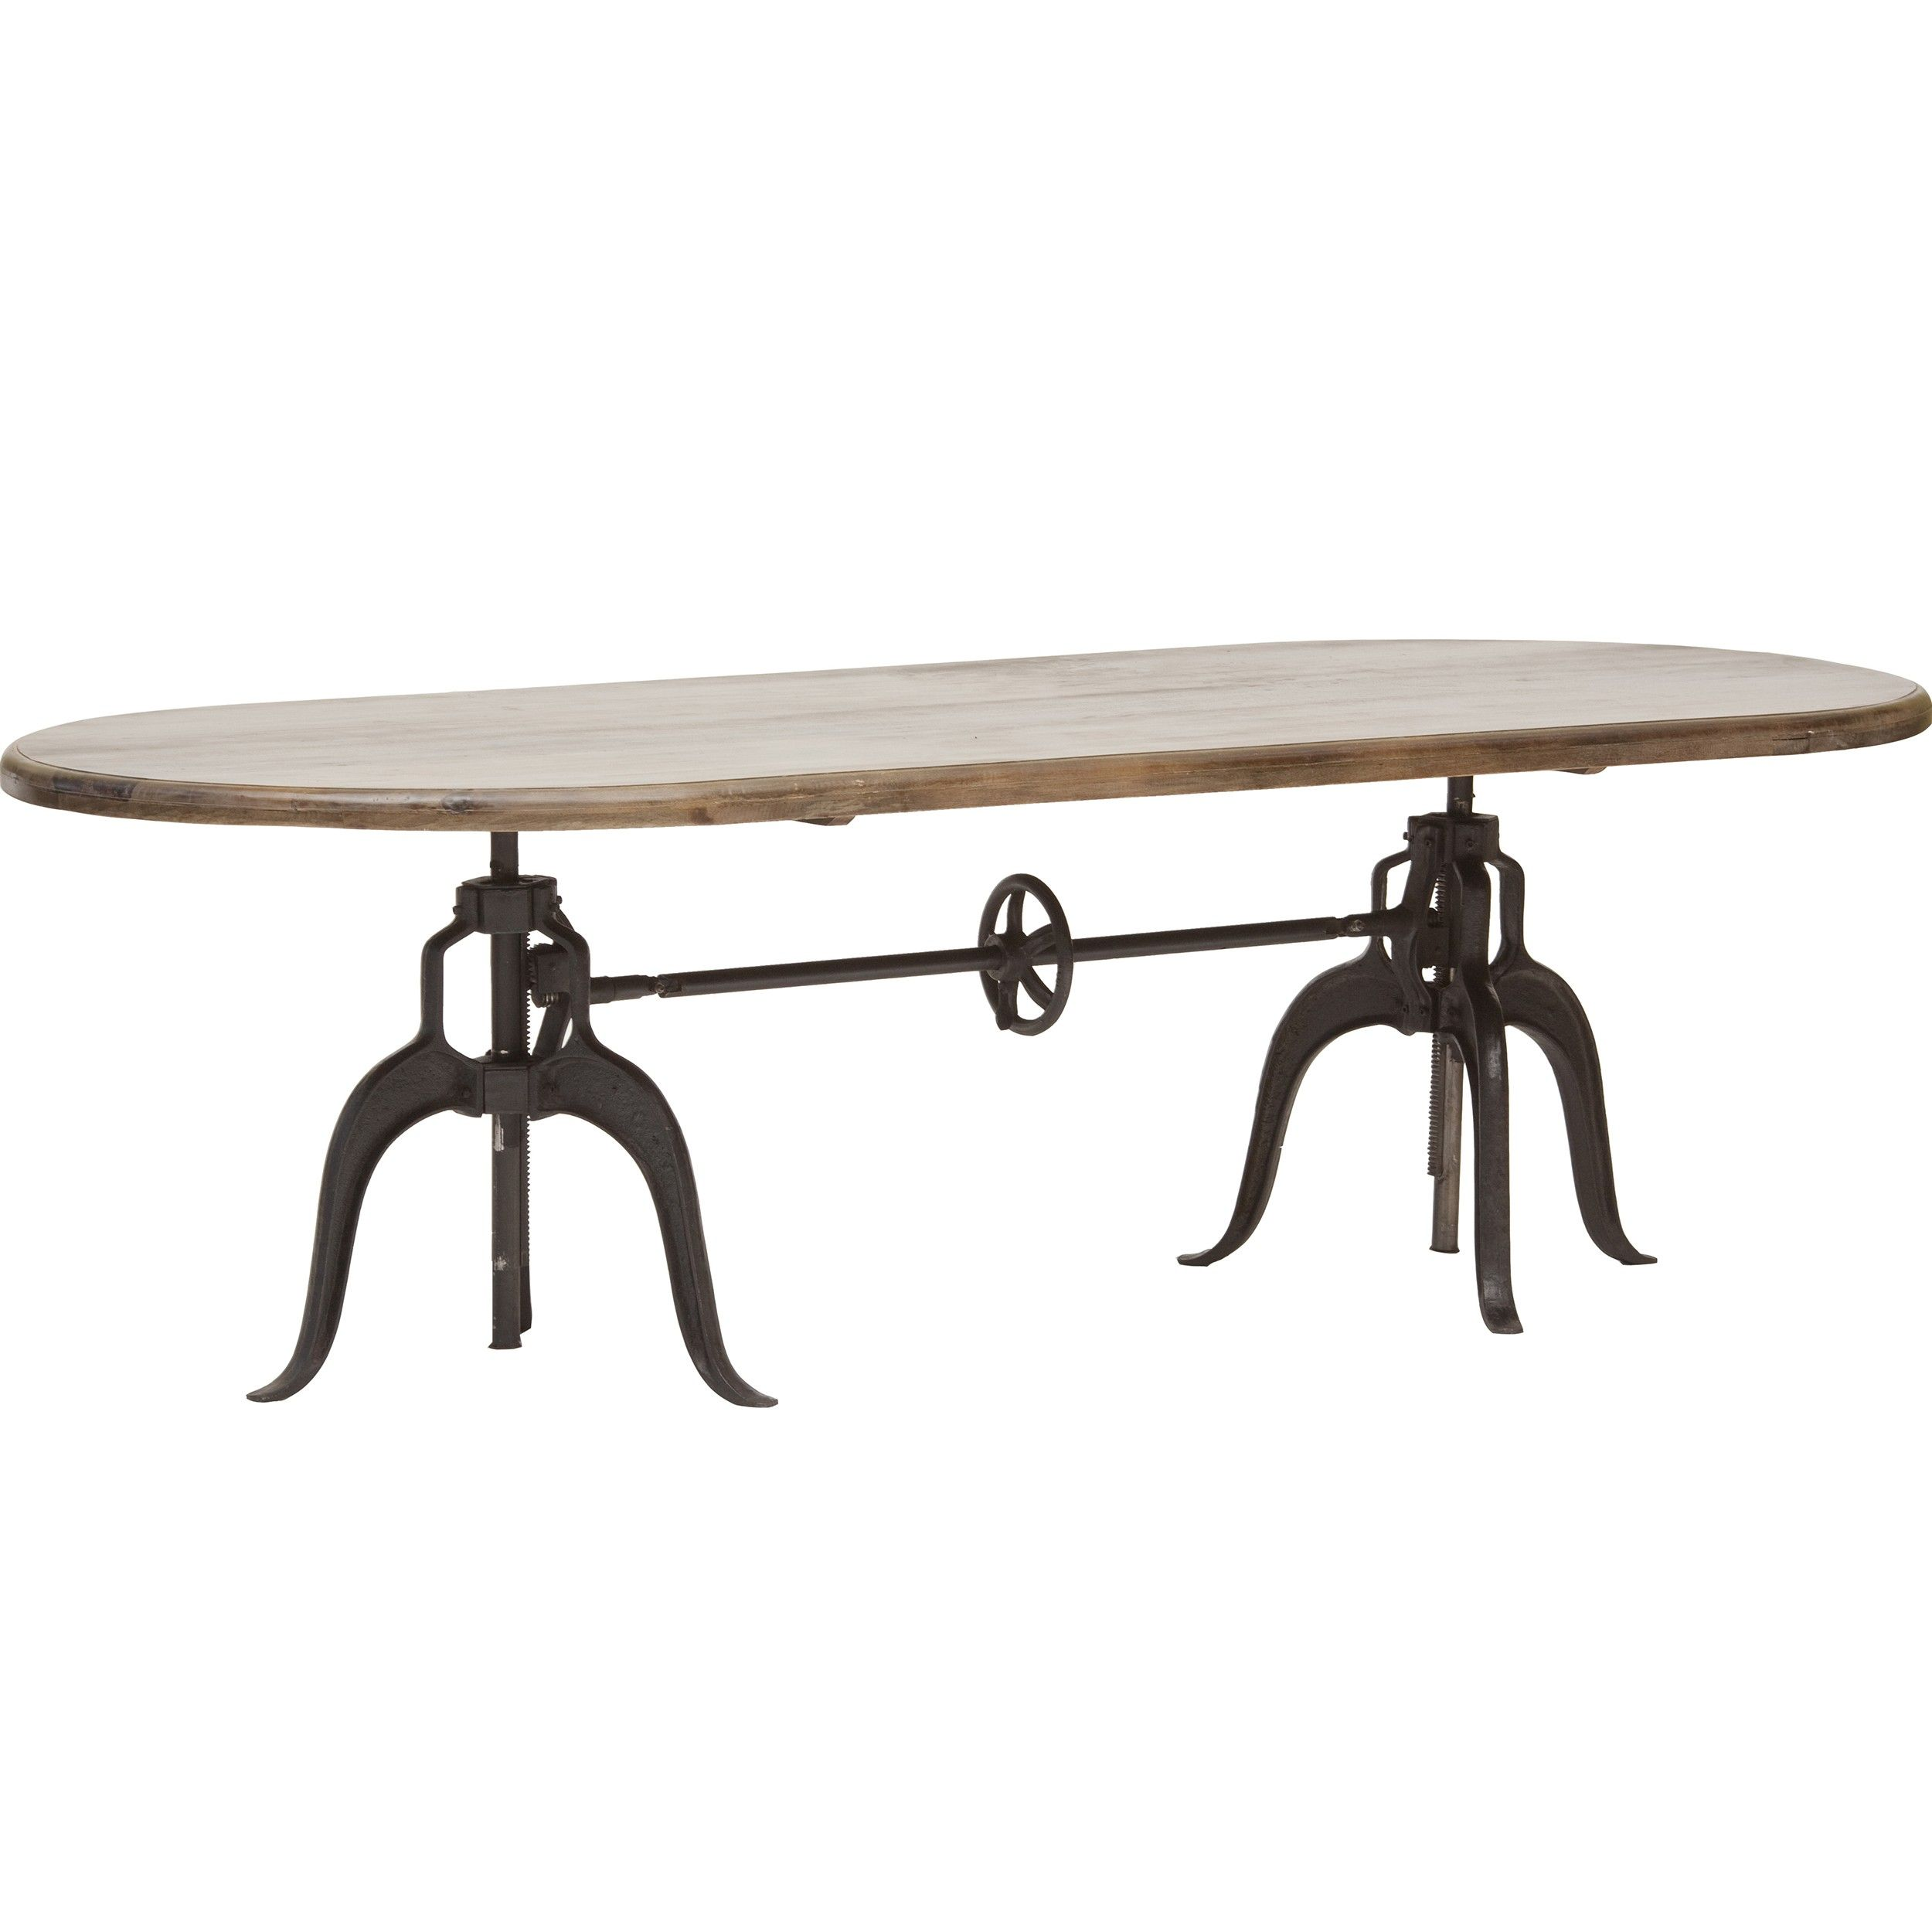 Double crank oval dining table at high fashion home industrial chic - Double Crank Oval Dining Table 1 899 00 High Fashion Home